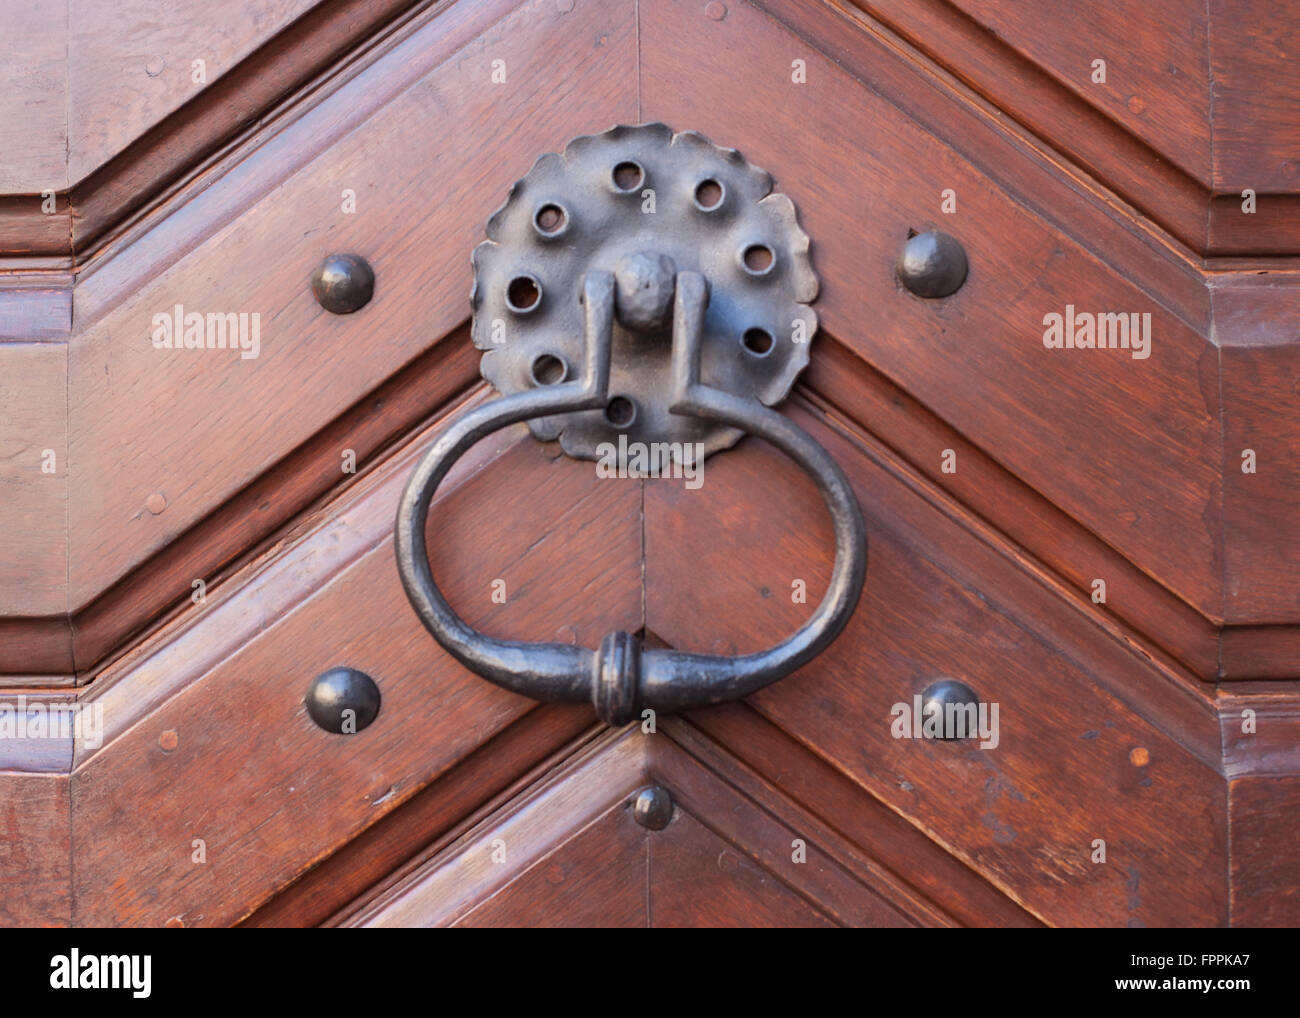 Close up detail of an old door handle - Stock Image